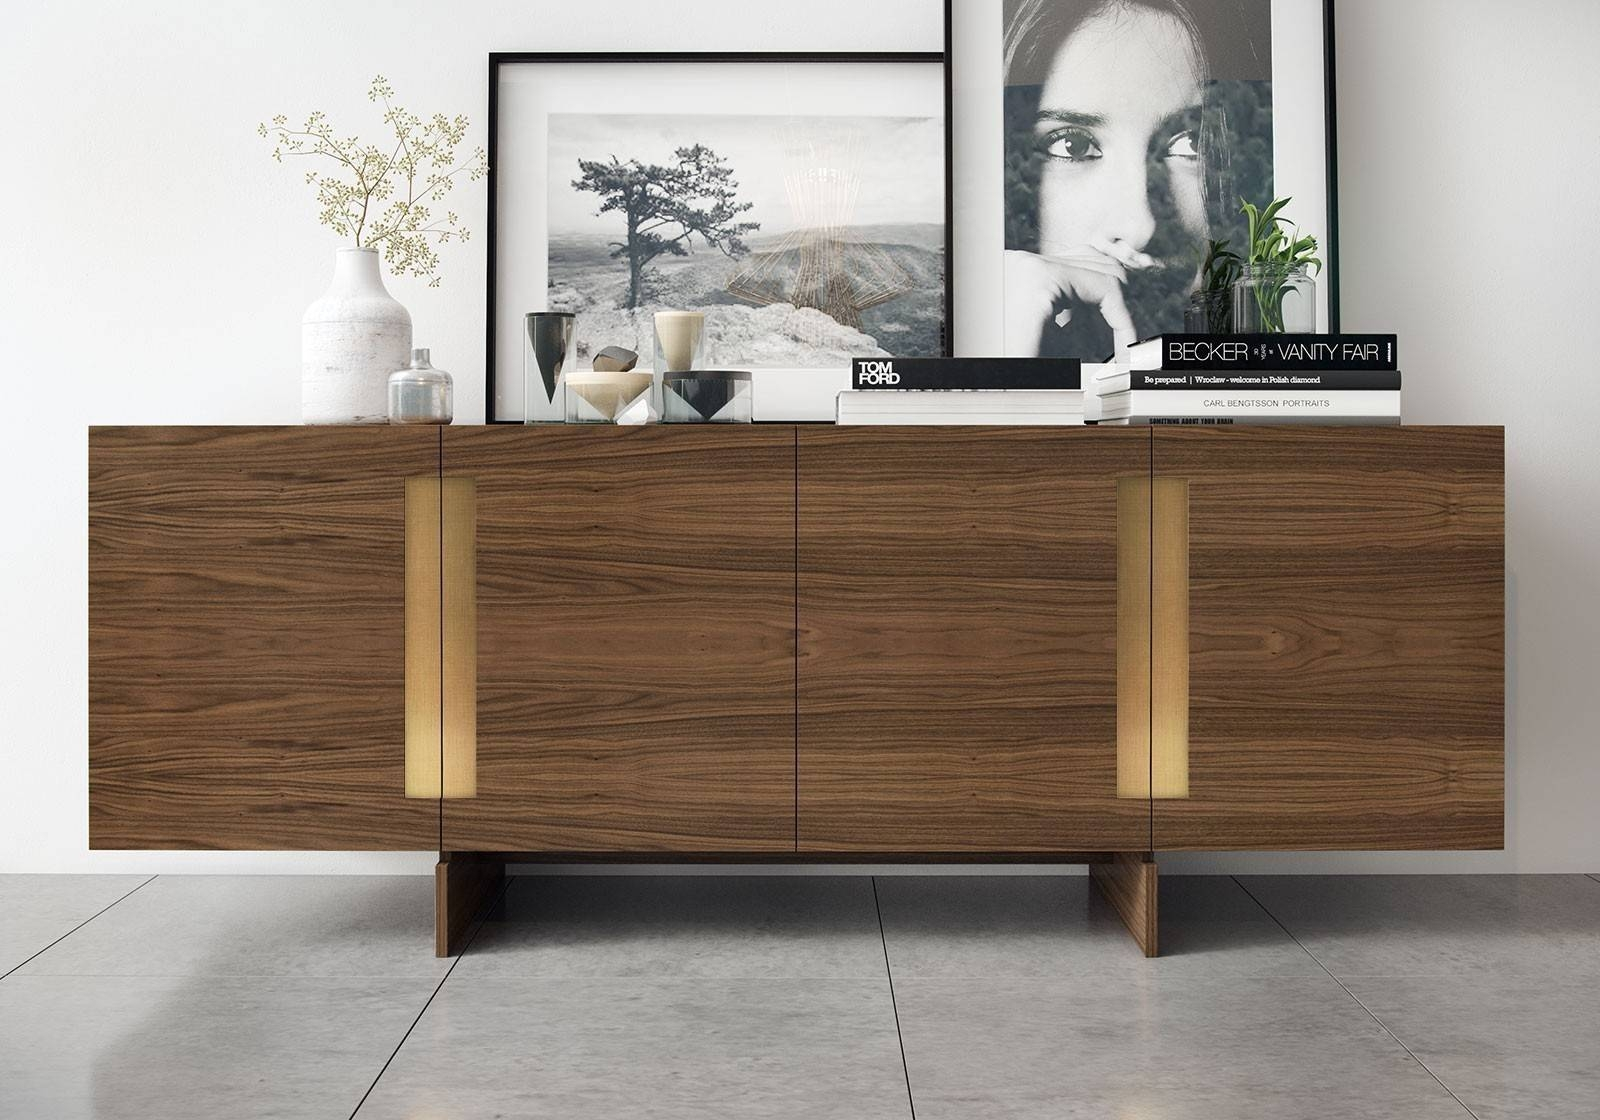 Awesome 12 Inch Deep Sideboard - Buildsimplehome pertaining to Deep Sideboards (Image 3 of 15)